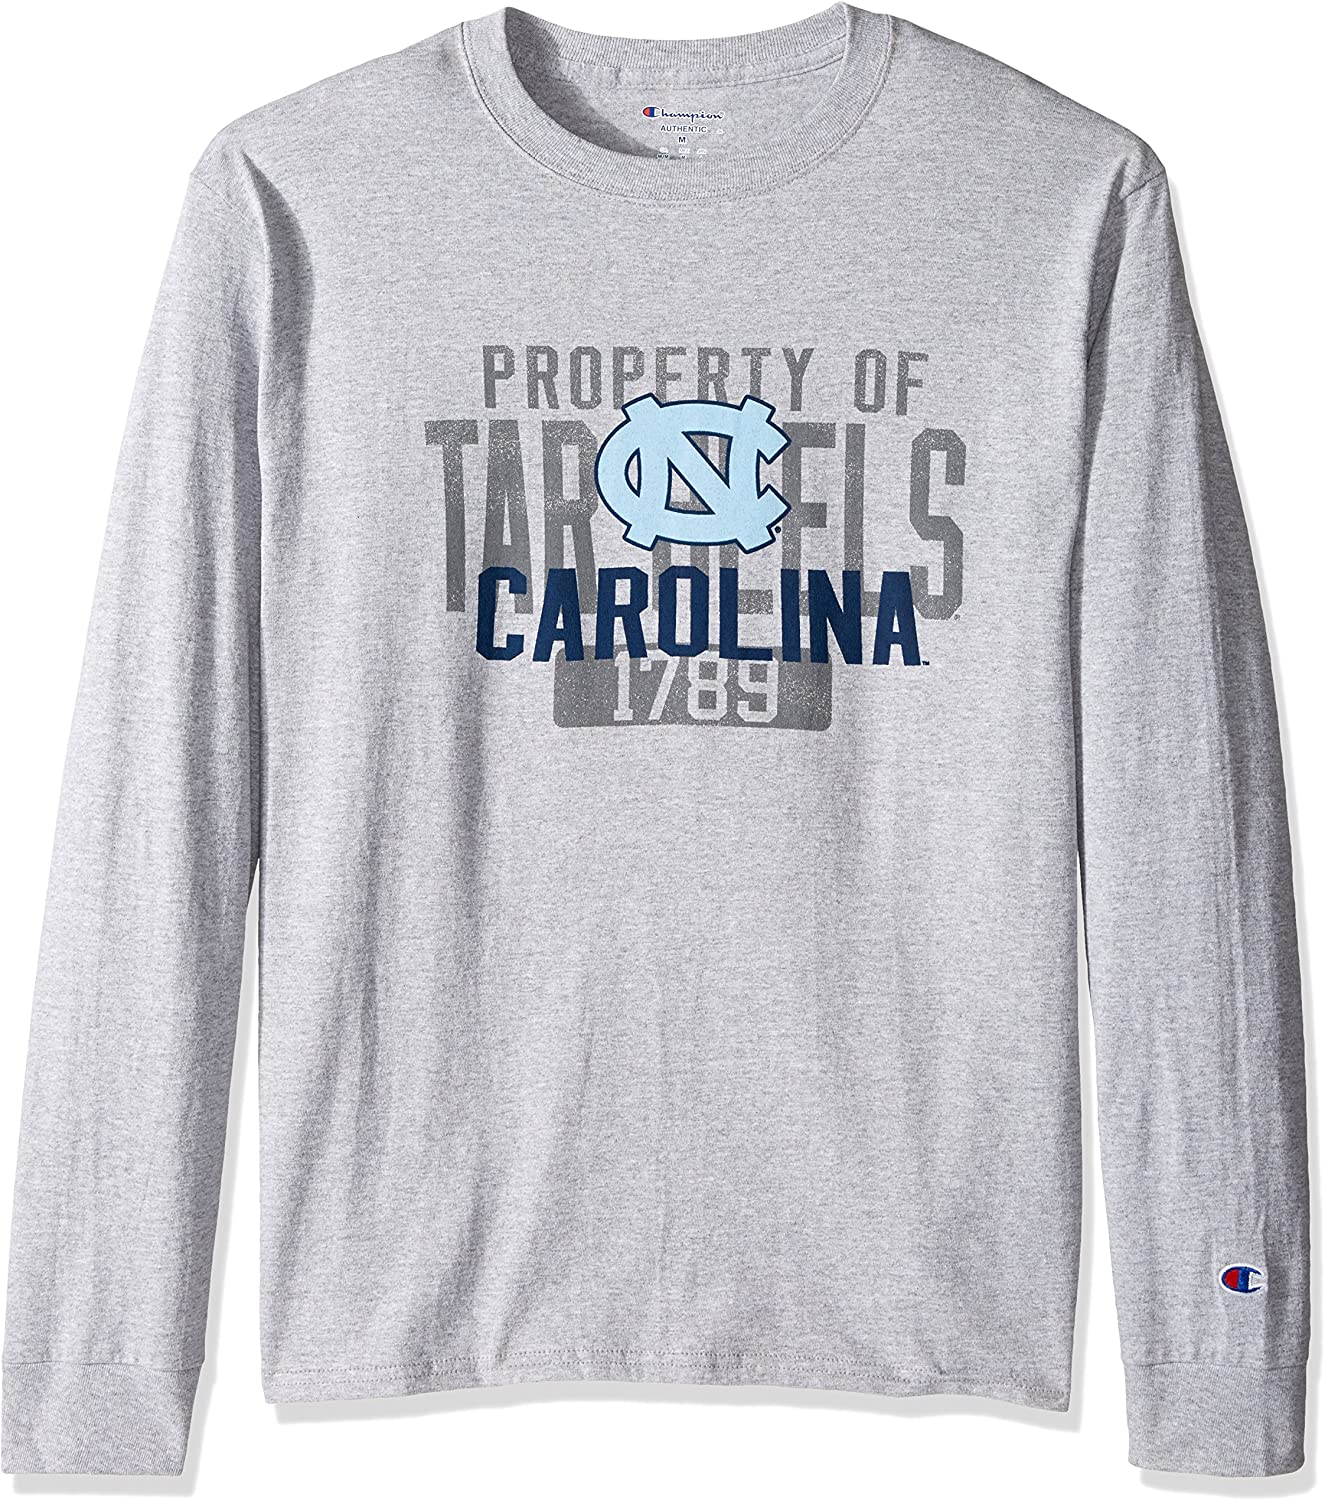 NCAA mens Long Sleeve Lightweight T-shirt Officially Licensed 100% Cotton Tagless Tees